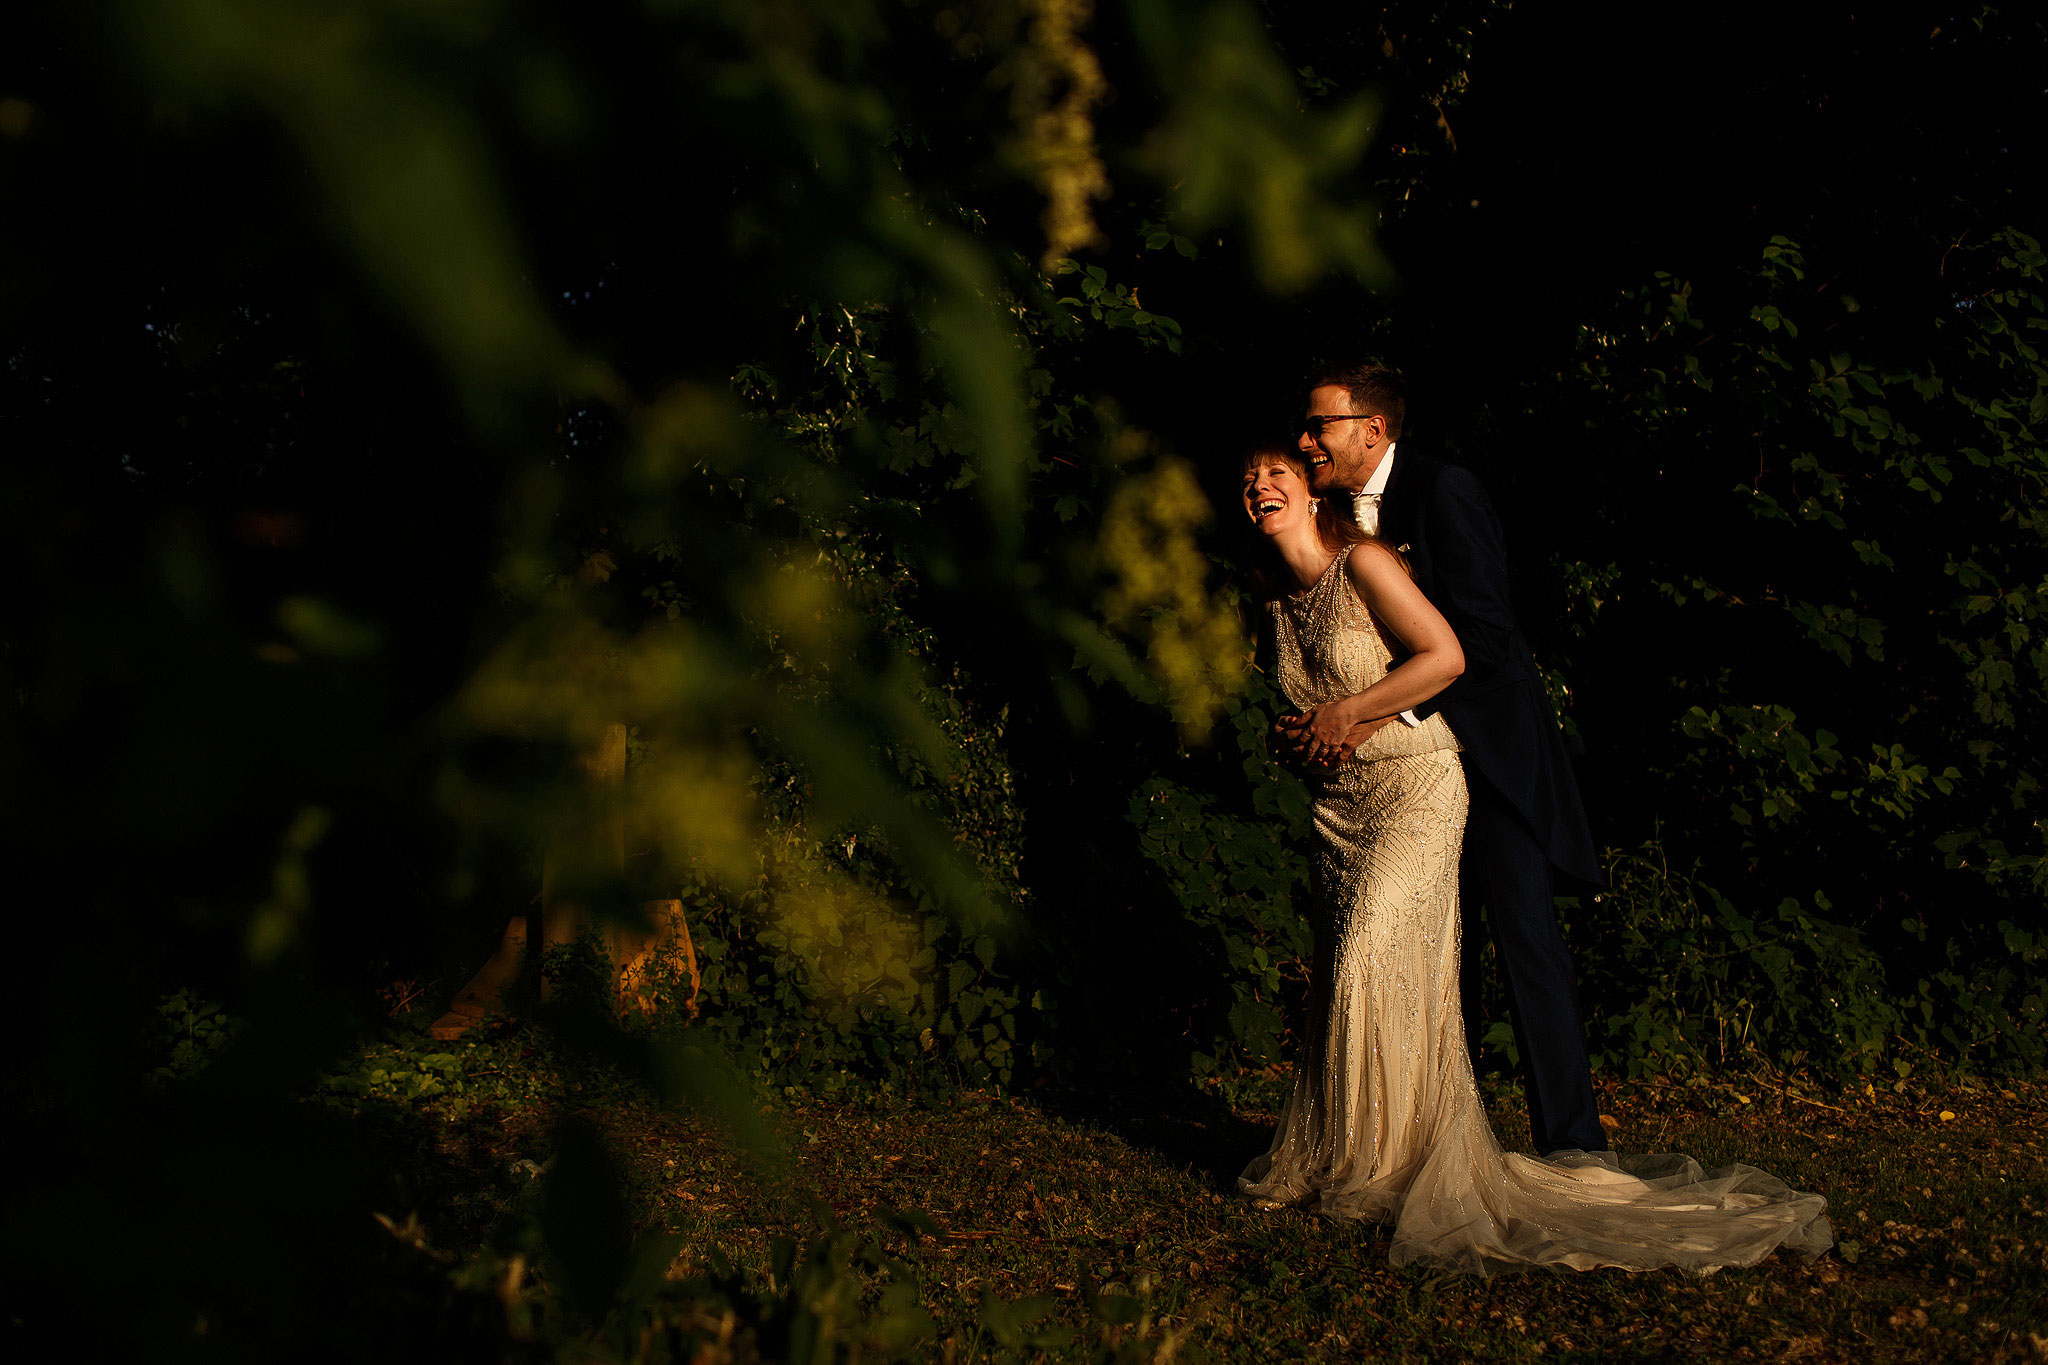 Bride wearing beautiful beaded floor length wedding gown laughing in the arms of her groom in beautiful sunlight during the wedding day portraits - The Villa at Wrea Green Wedding Photography - Toni Darcy Photography